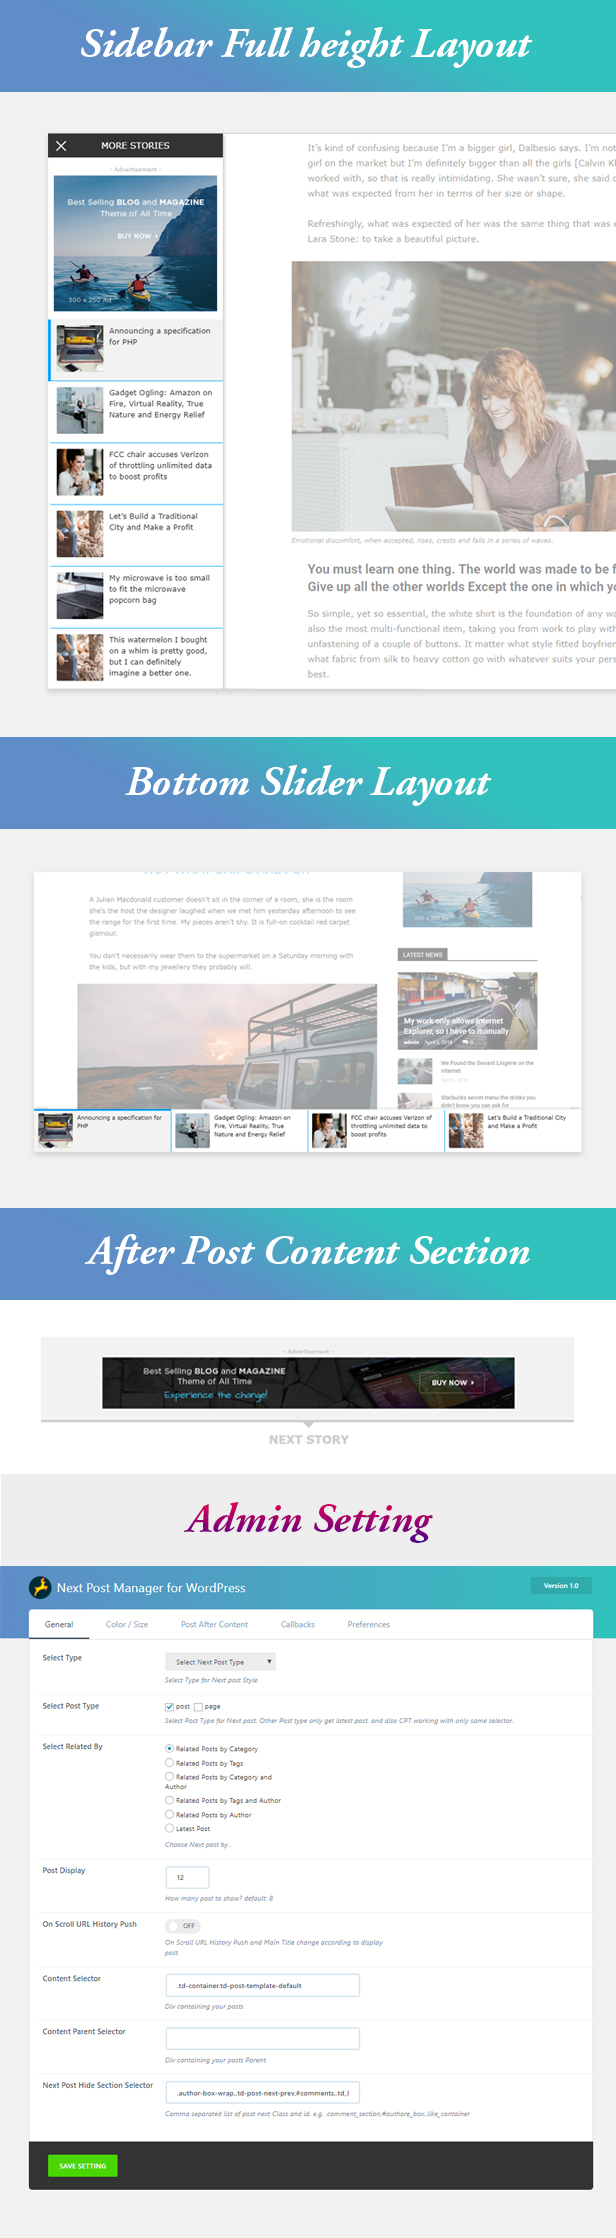 Left Sidebar, Bottom Slider and After Content Image add Example